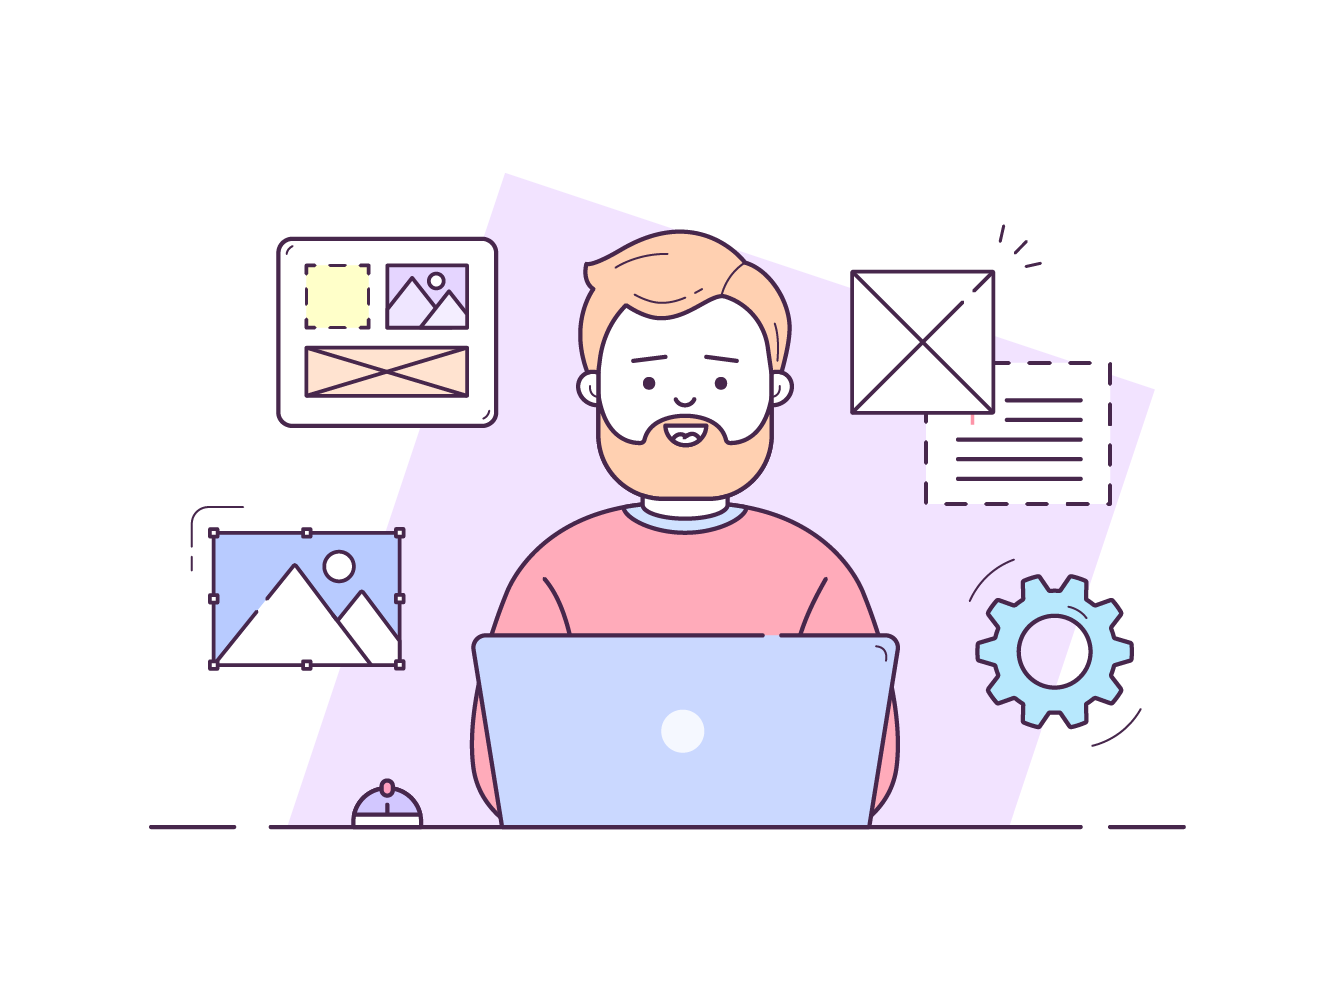 An illustration of a person sitting at a laptop working.